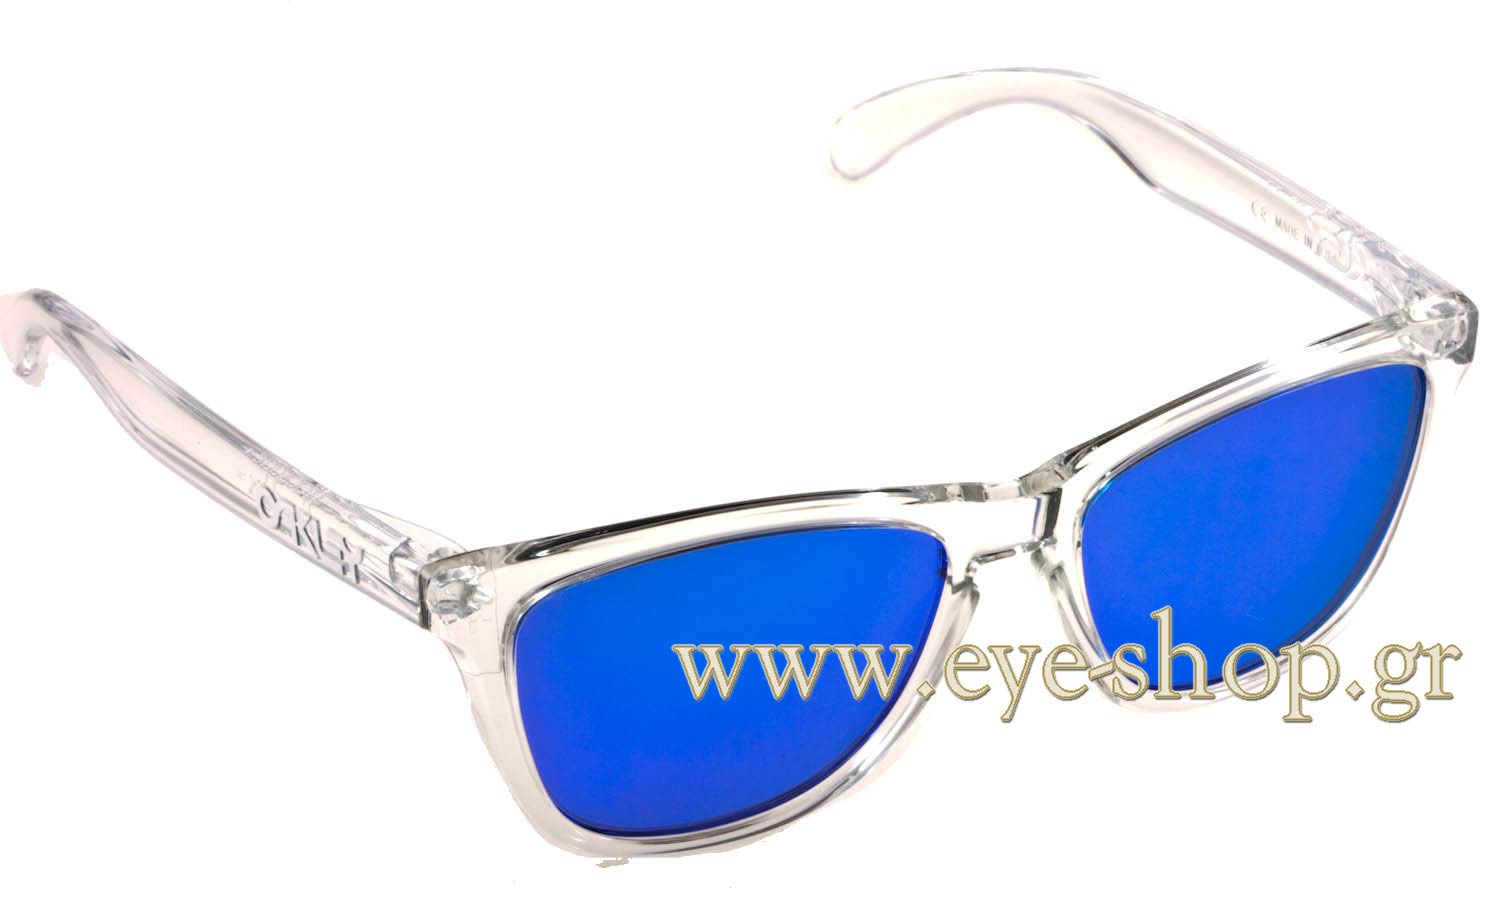 Walmart Returns Without Receipt Excel Oakley Frog Eye Sunglasses  Louisiana Bucket Brigade Check Invoice Excel with Payment Against Proforma Invoice Word Oakley Frog Eye Sunglasses App For Receipts Excel